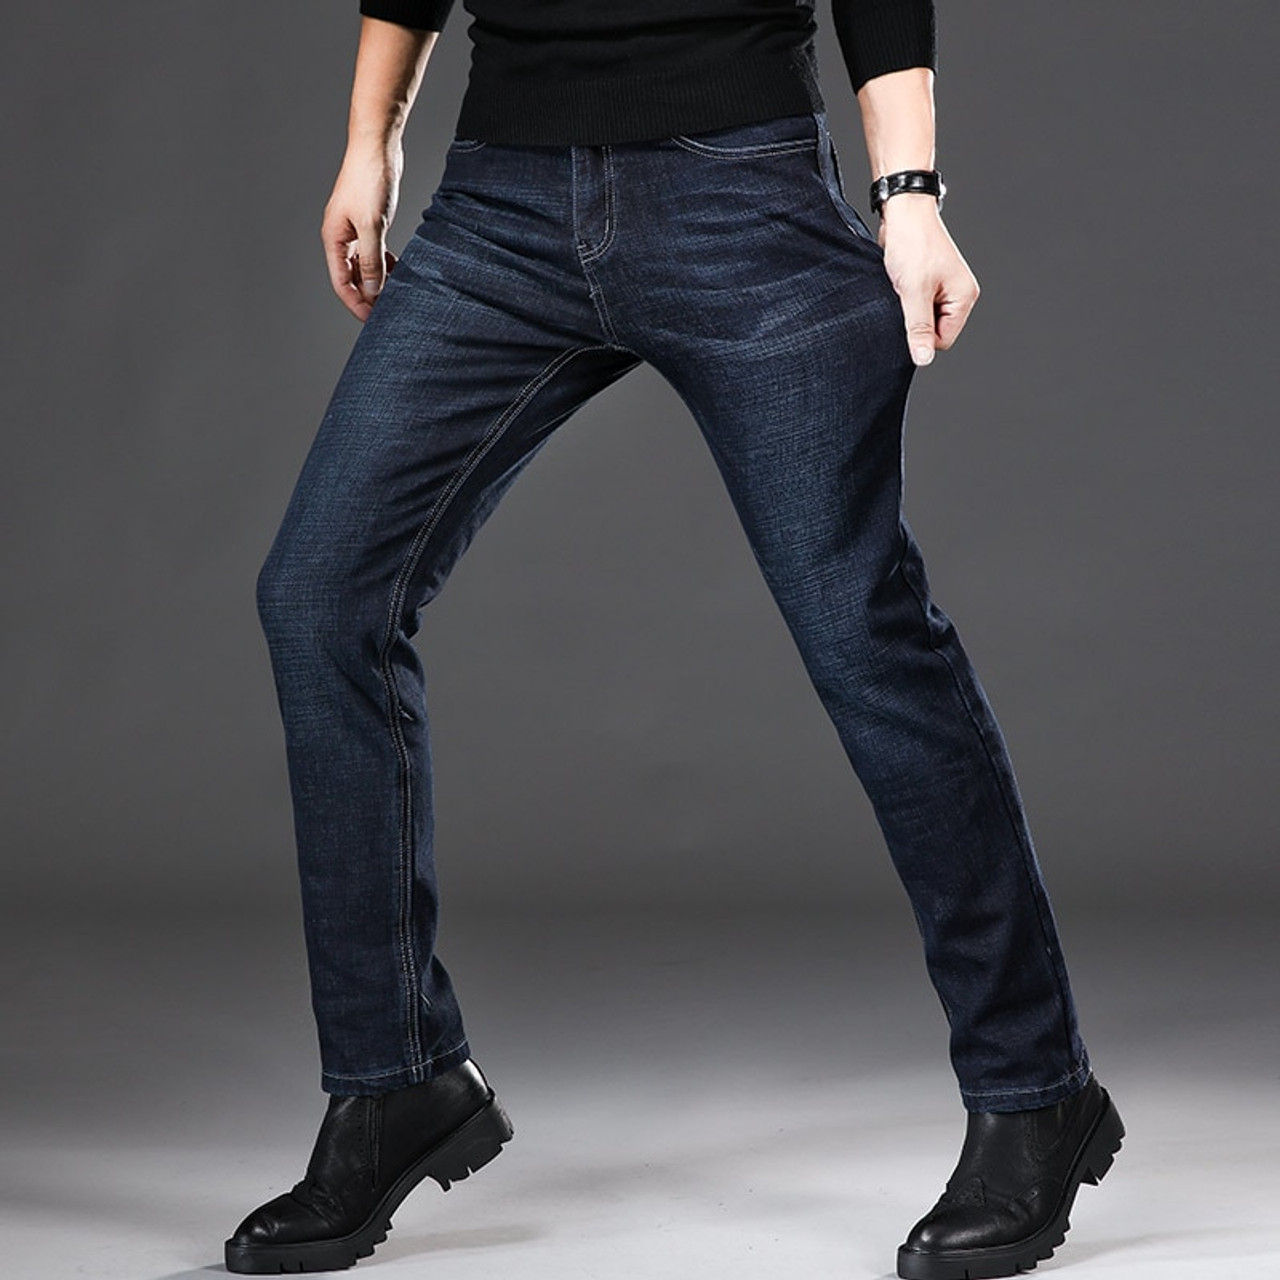 aca00a45518 ... 2018 Autumn New Men s Brand Jeans Business Casual High Quality Fashion  Embroidery Trousers Male Slim Fit ...